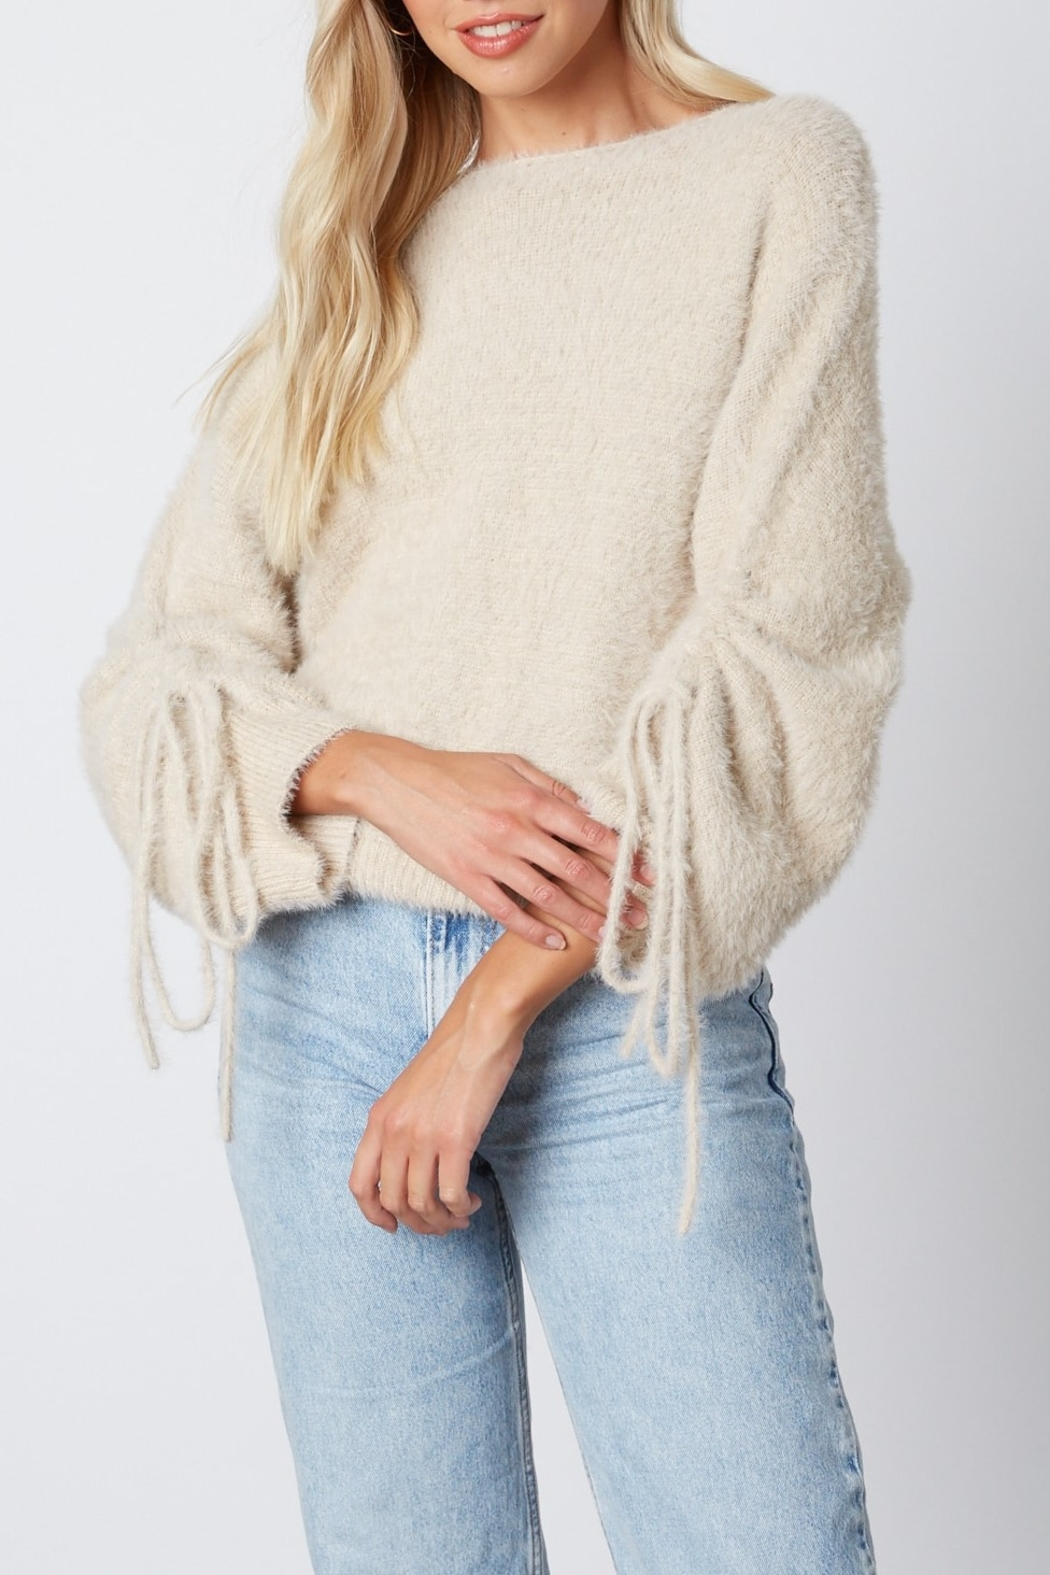 Cotton Candy  Fuzzy Pull Sleeve Sweater - Main Image